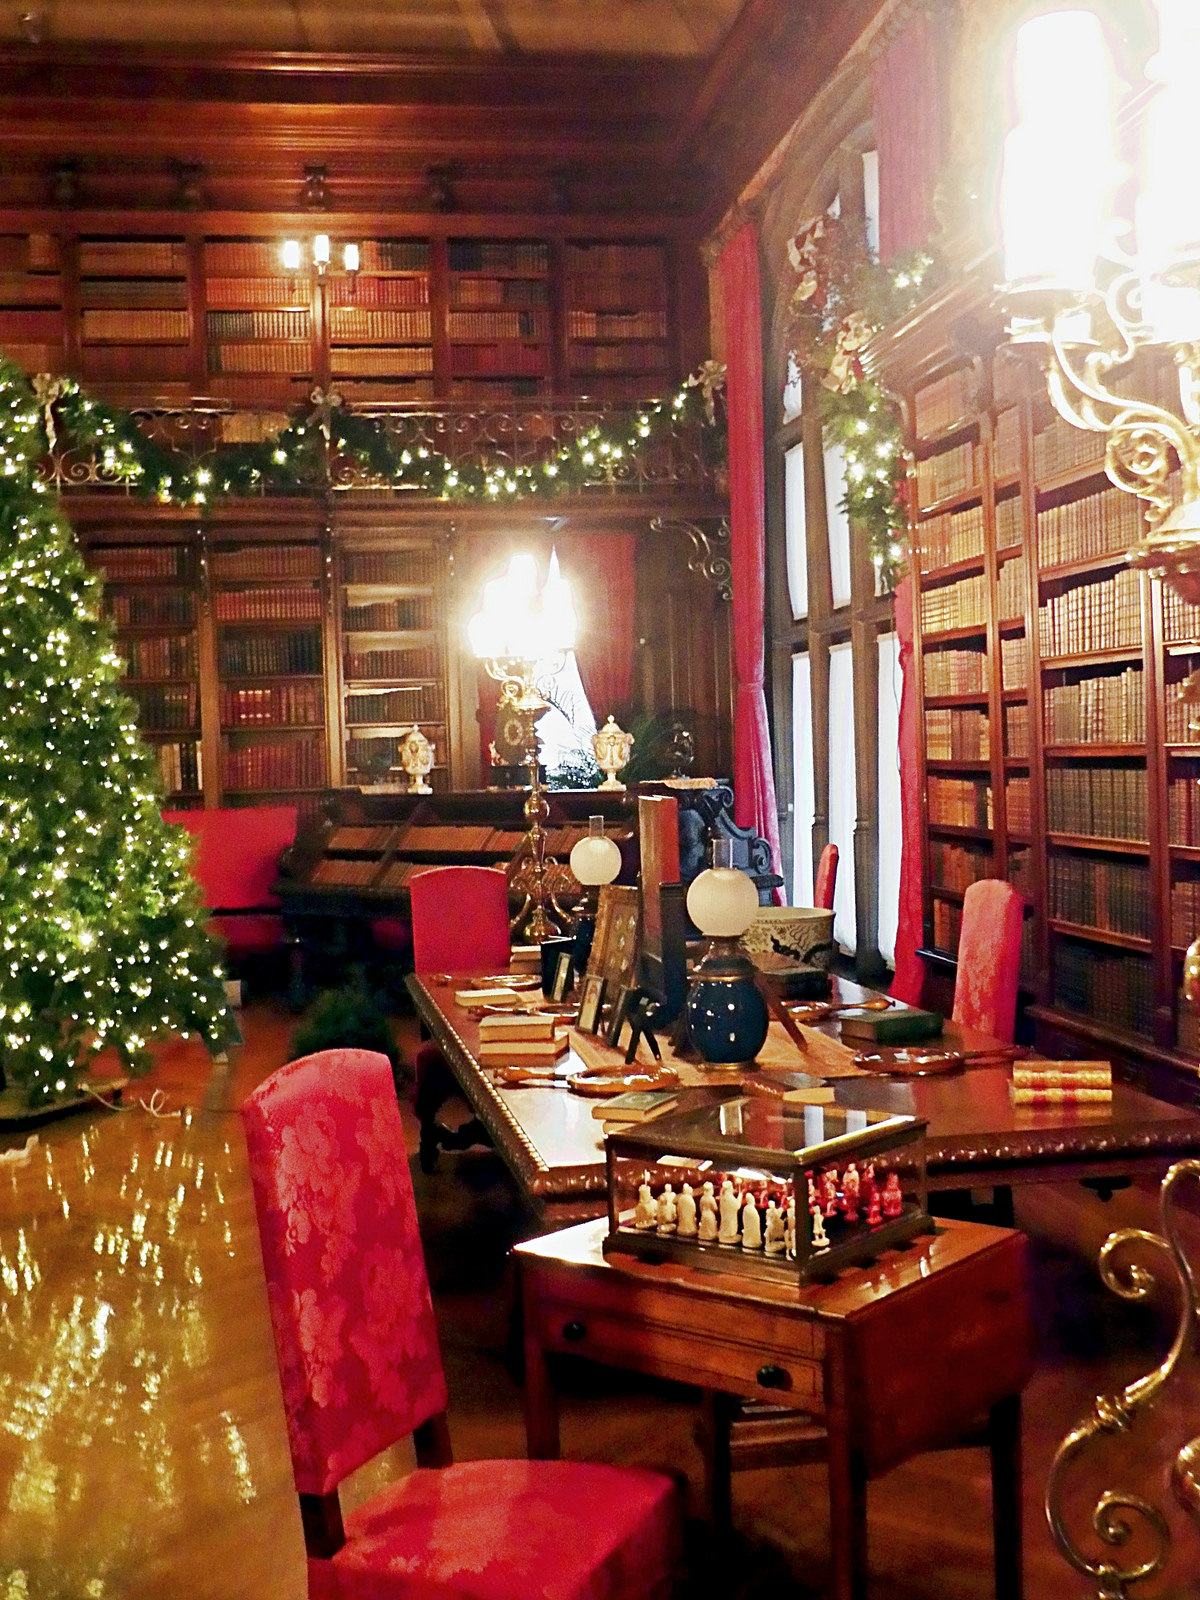 The Biltmore Library